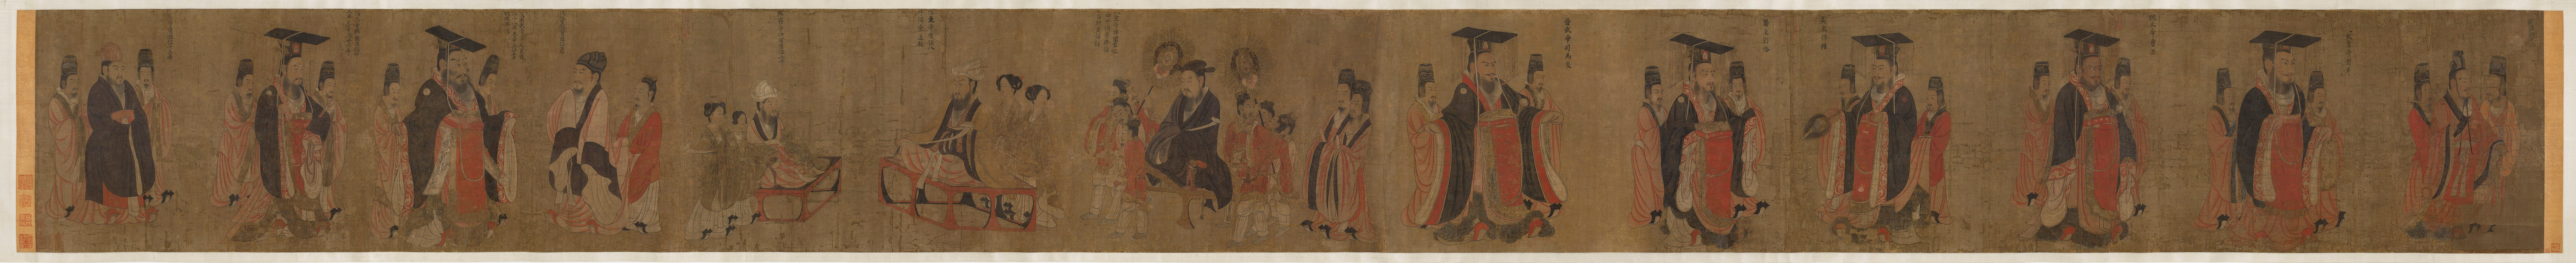 a book critique of victor conruis emperor yang of the sui dynasty Issuu is a digital publishing platform that makes it simple to publish magazines, catalogs, newspapers, books, and more online easily share your publications and get them in front of issuu's.